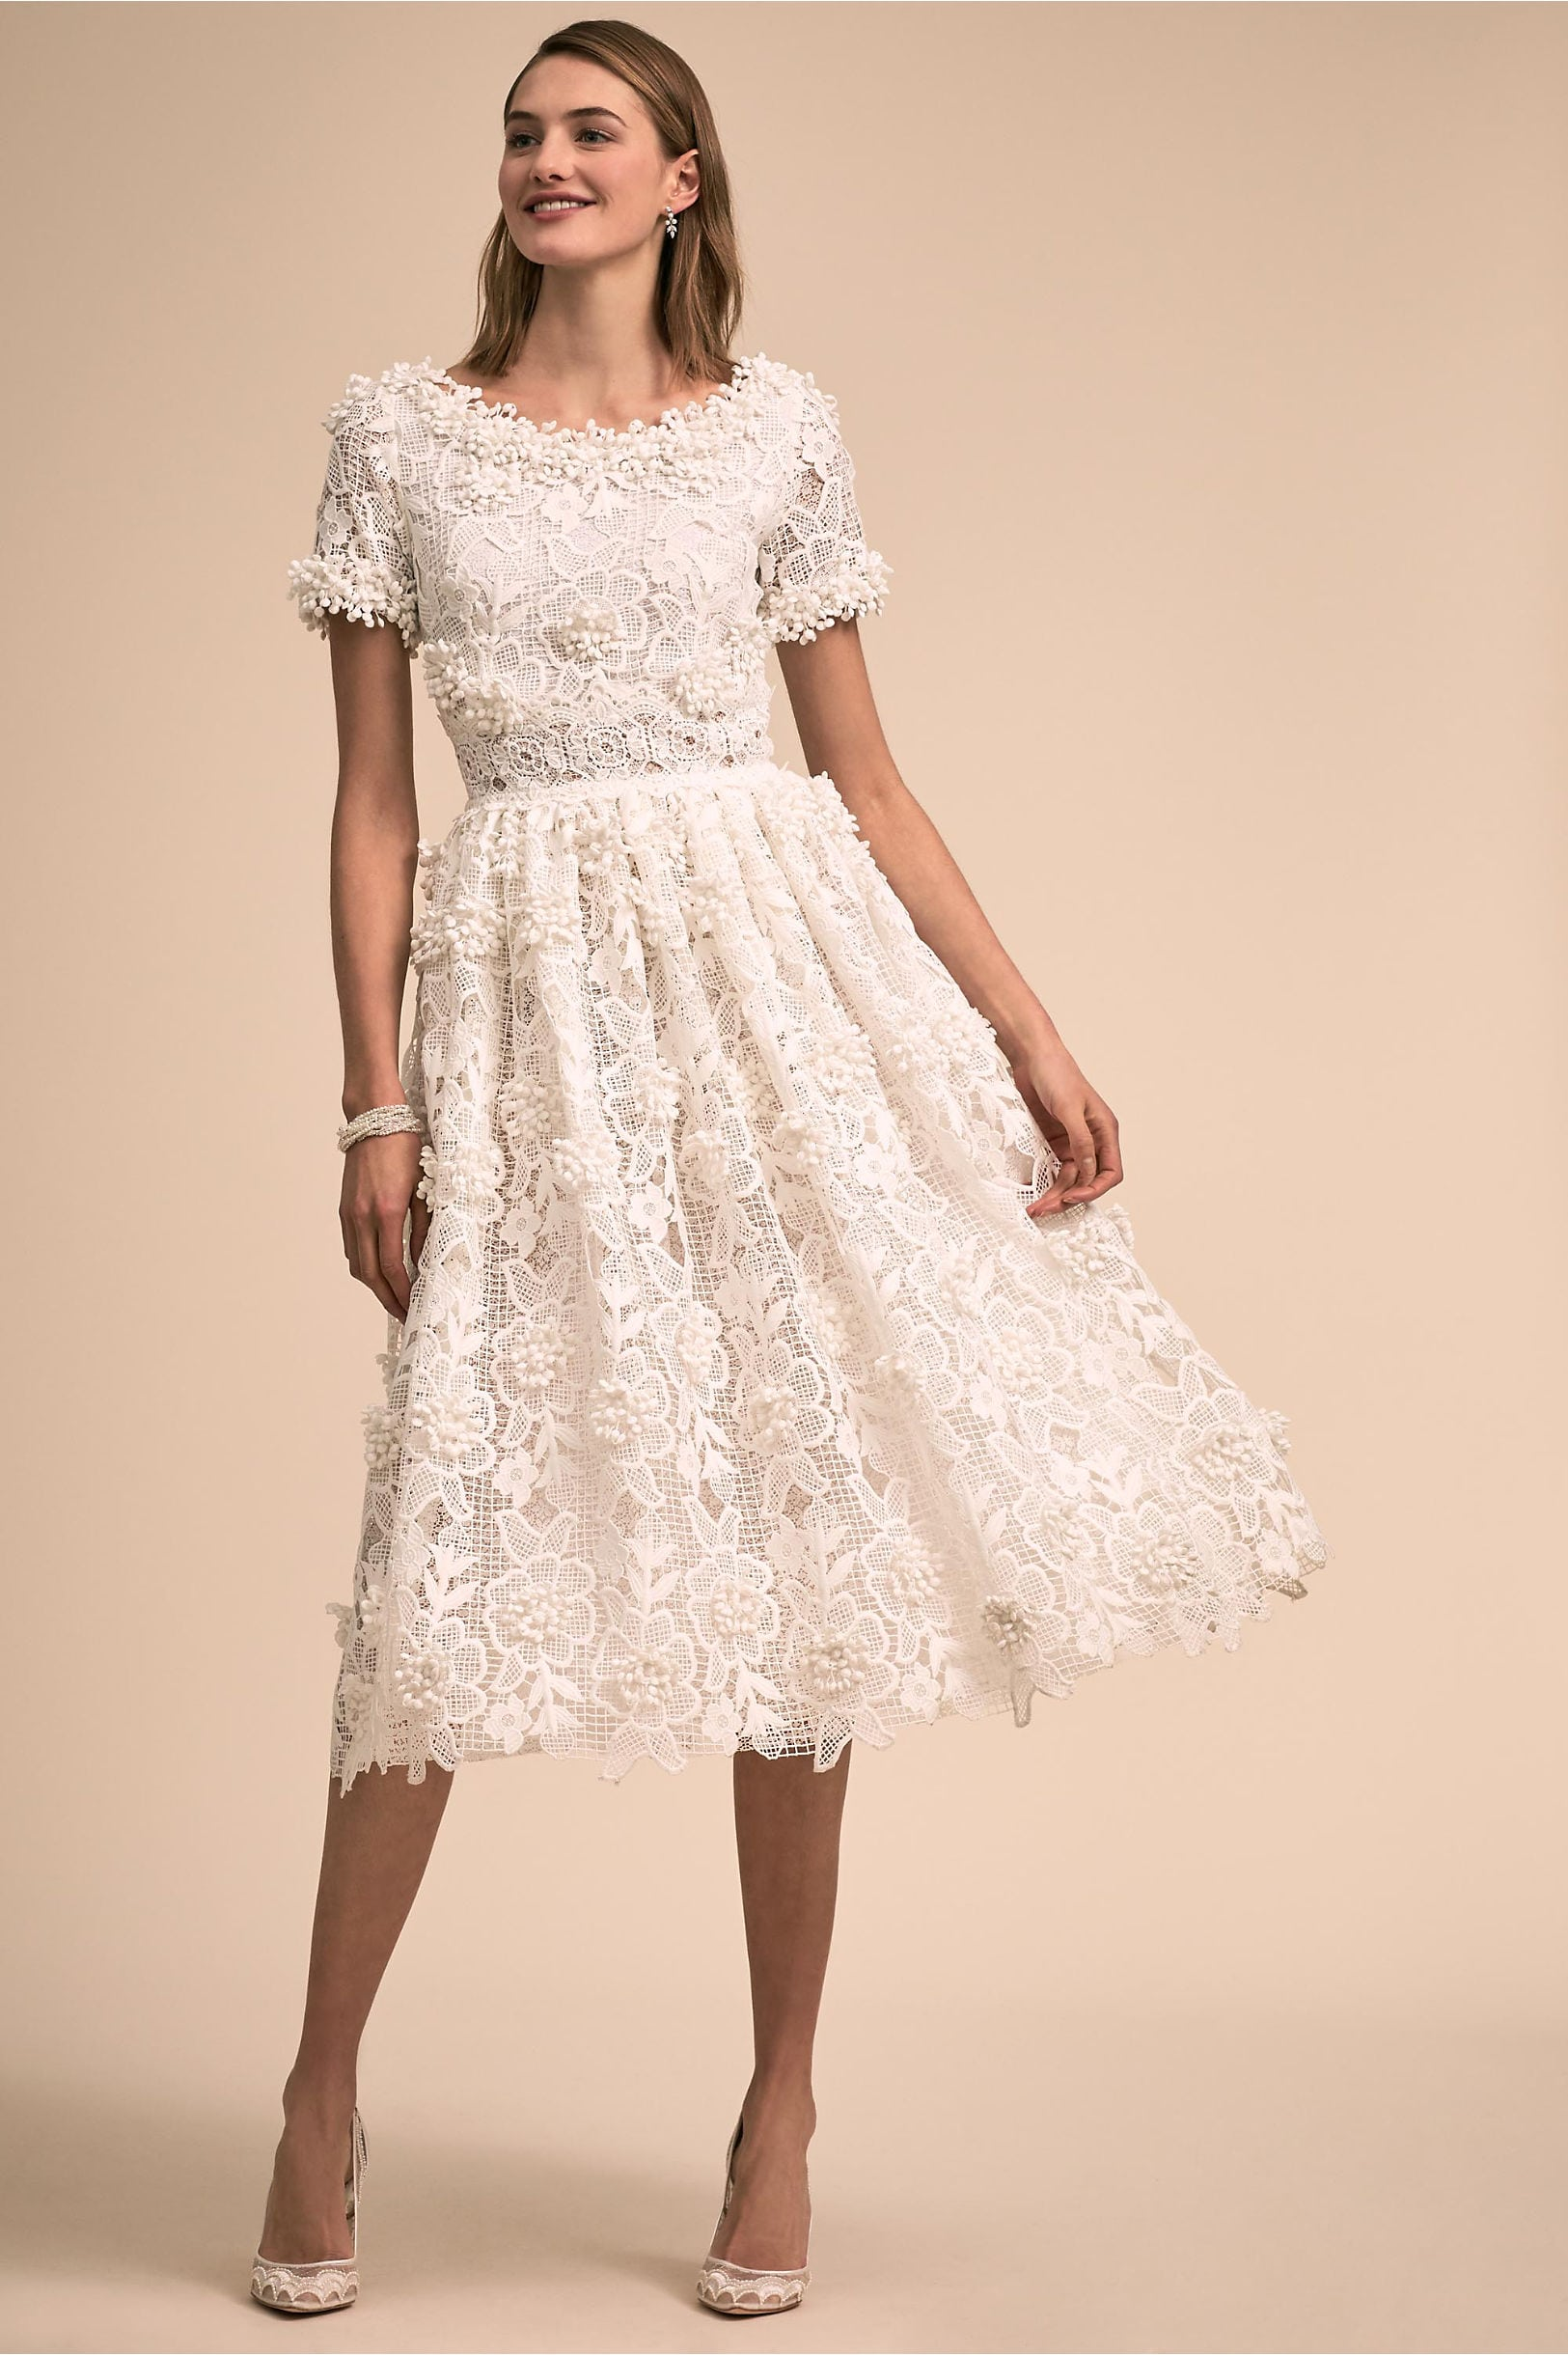 dcadedb209da Dixon Gown from BHLDN: floral lace with beaded flower accents, short  sleeves, knee